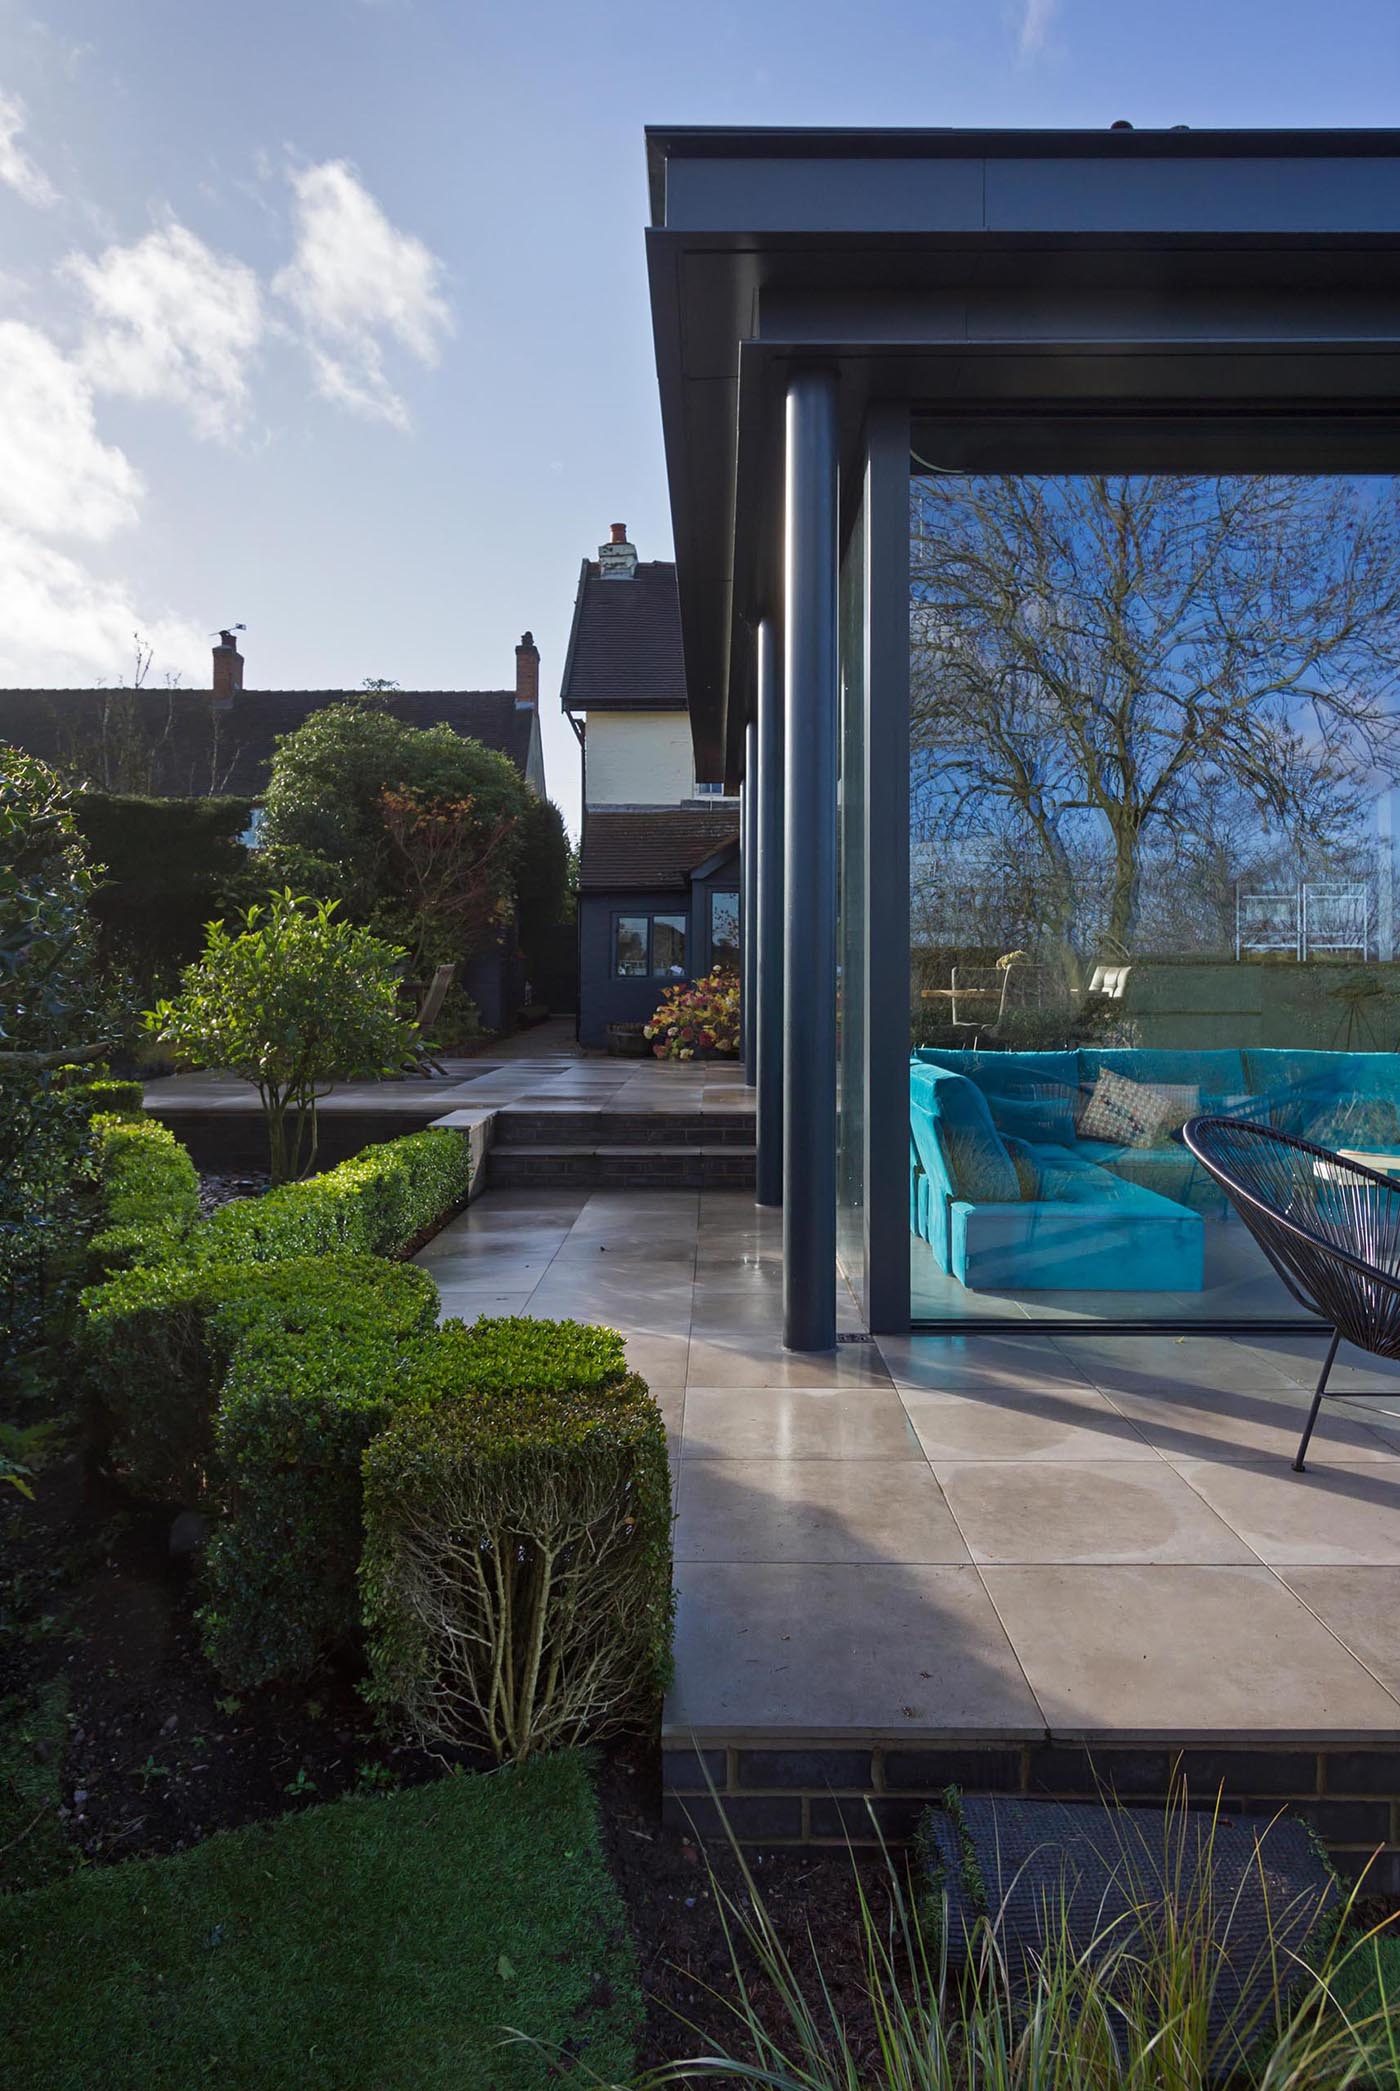 A modern extension with glass walls also has a wrap-around patio.